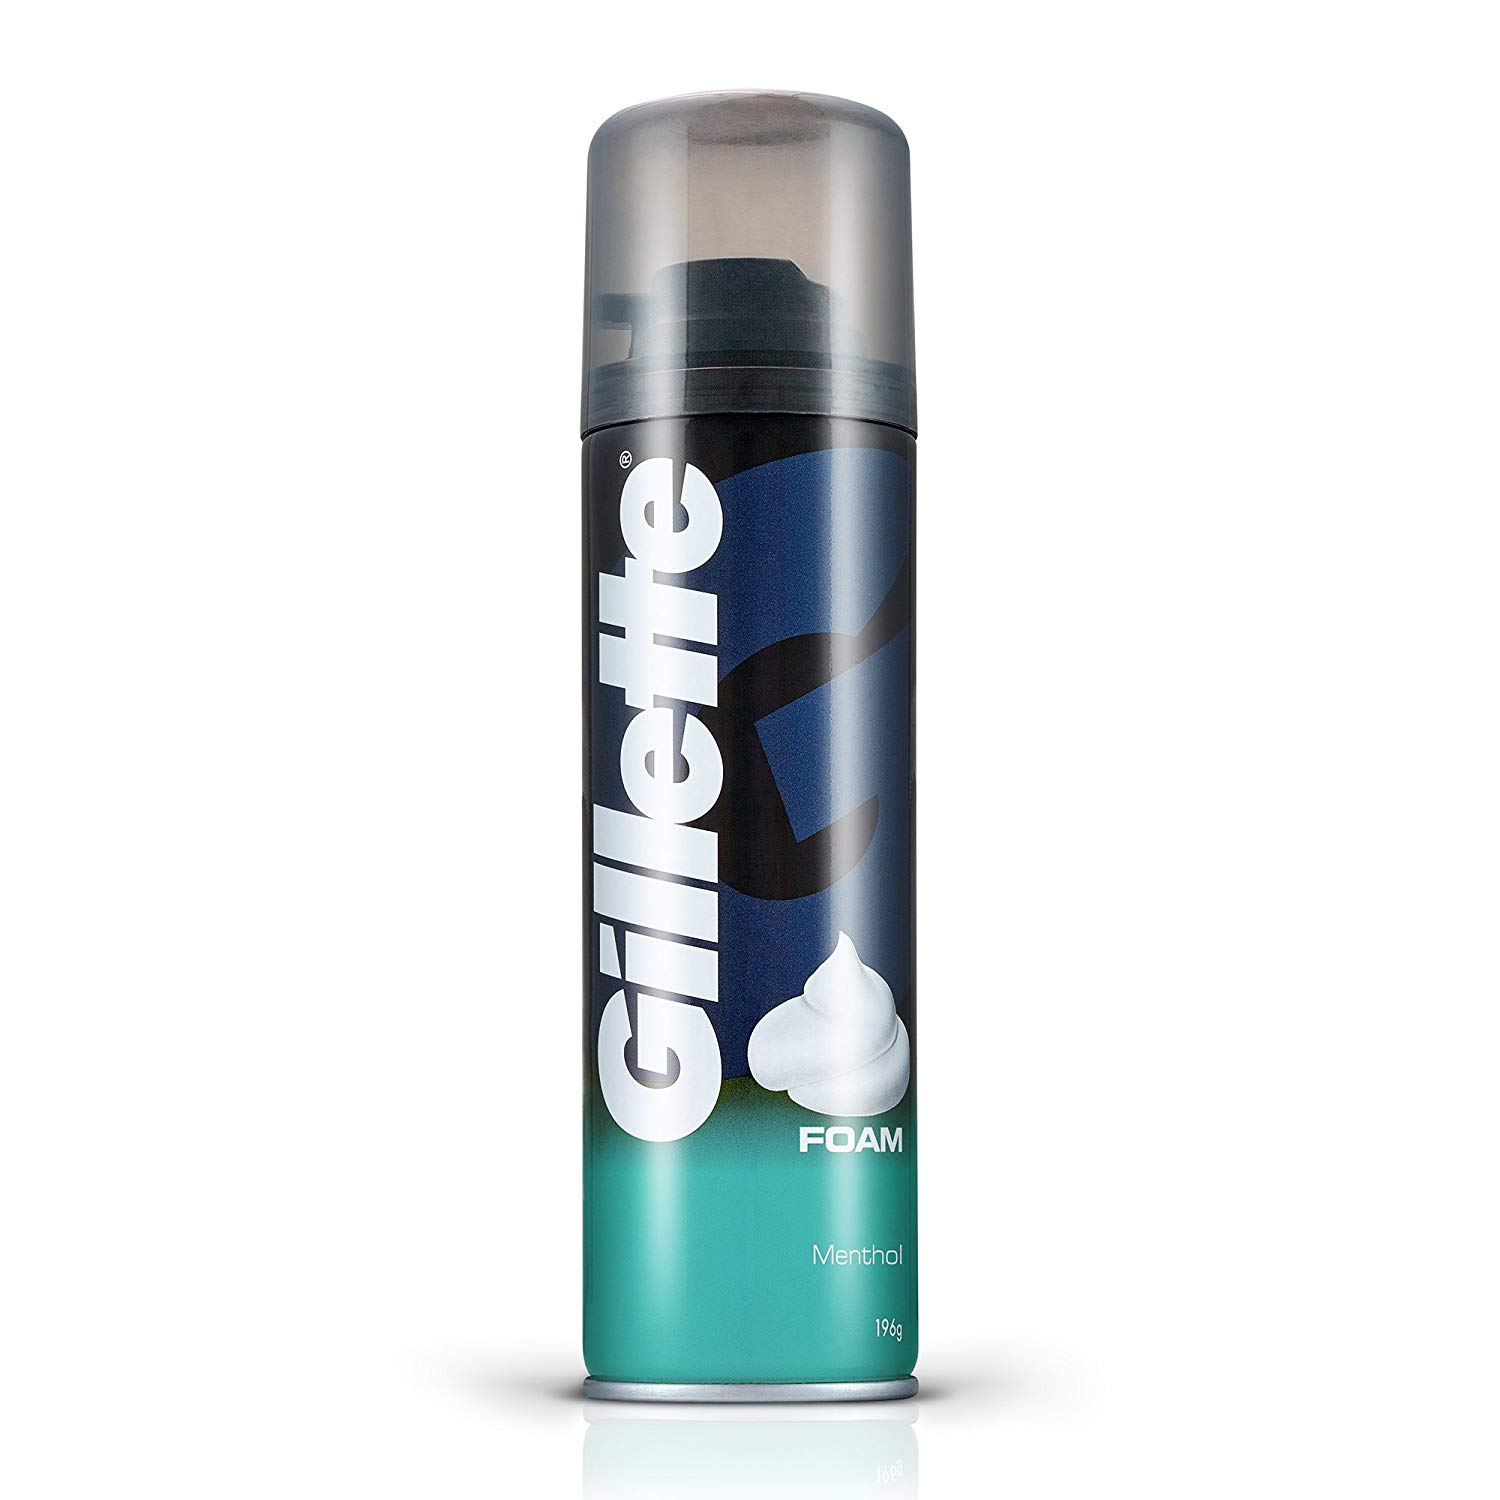 Gillette Shaving Foam Menthol 200ml